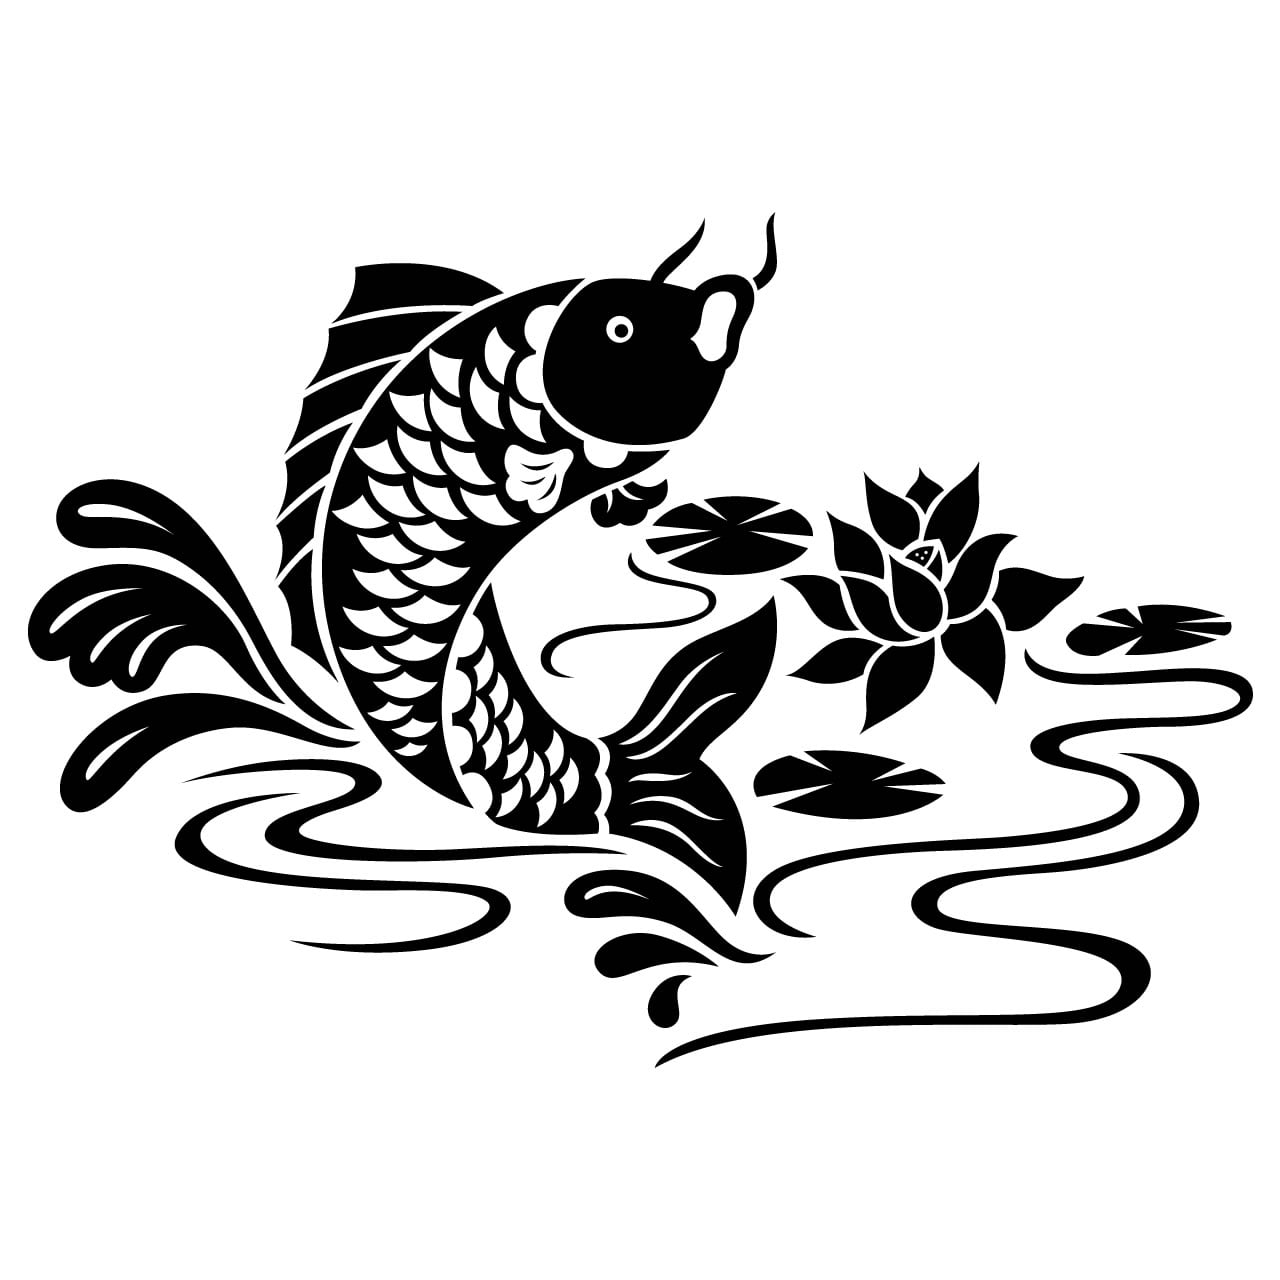 Koi carp fish animal wall sticker world of wall stickers for Koi fish wall stickers